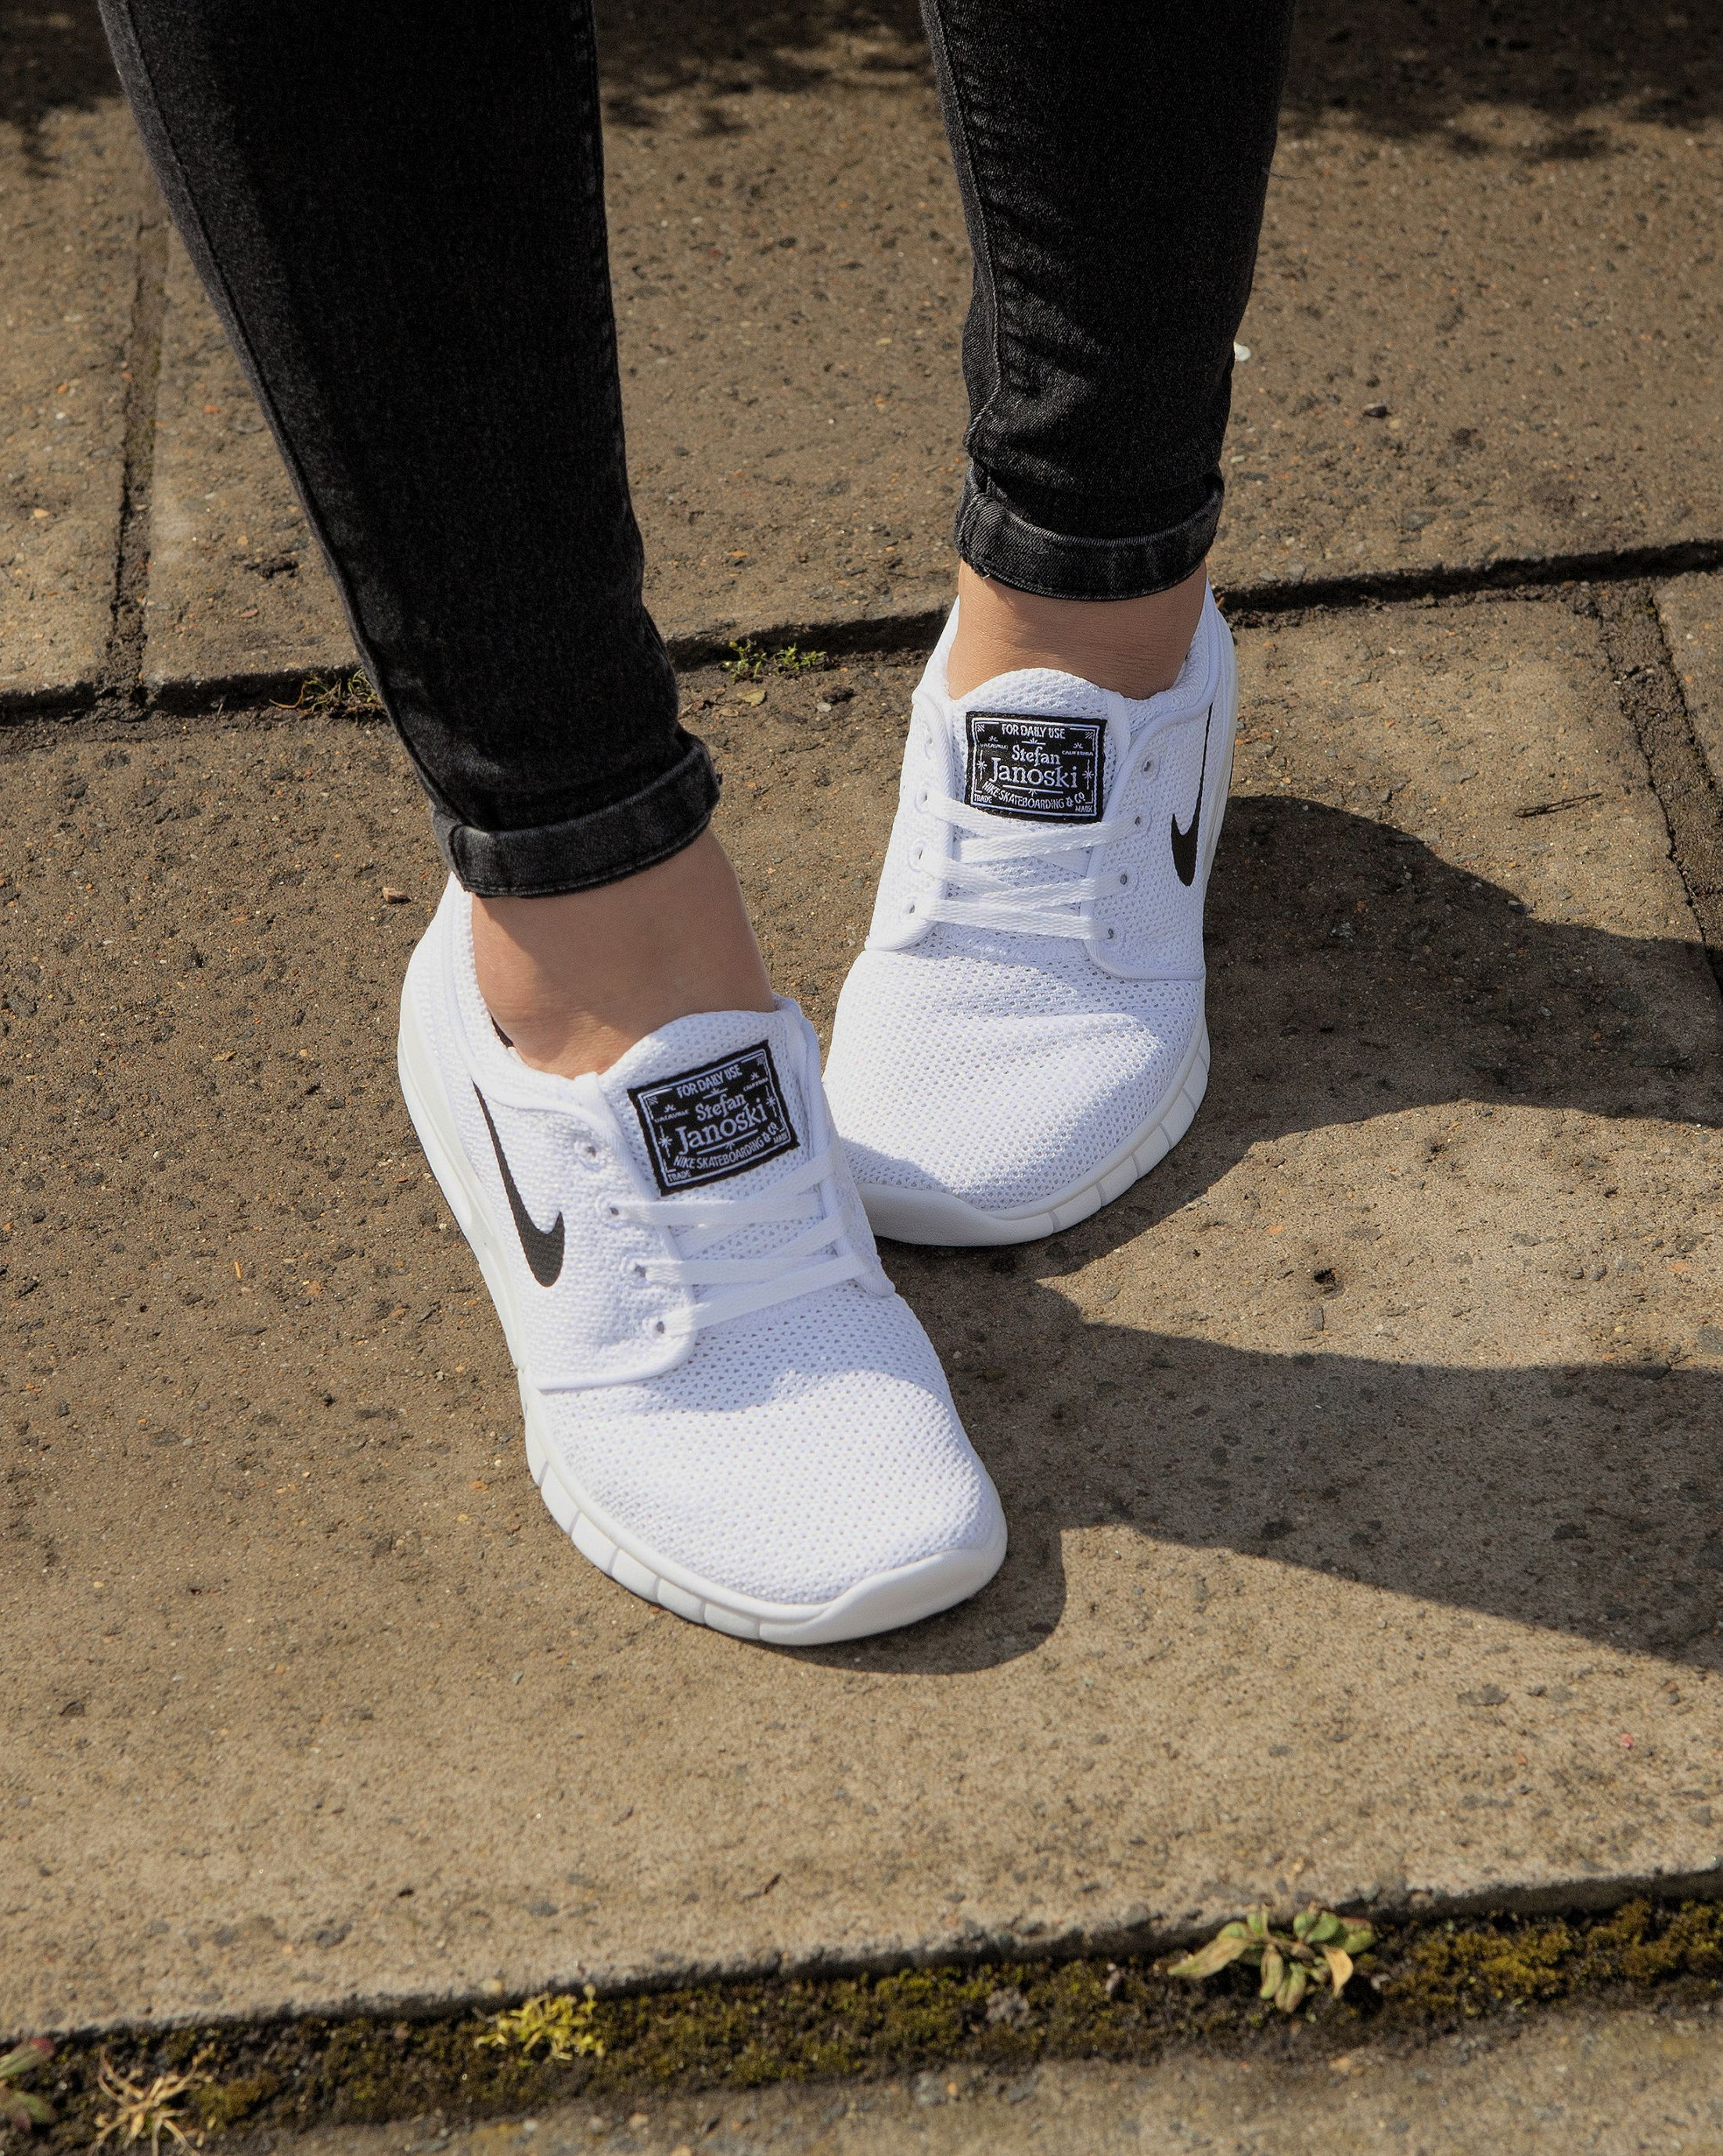 nike.sneakerssusa on | Nike shoes outlet, Adidas shoes women